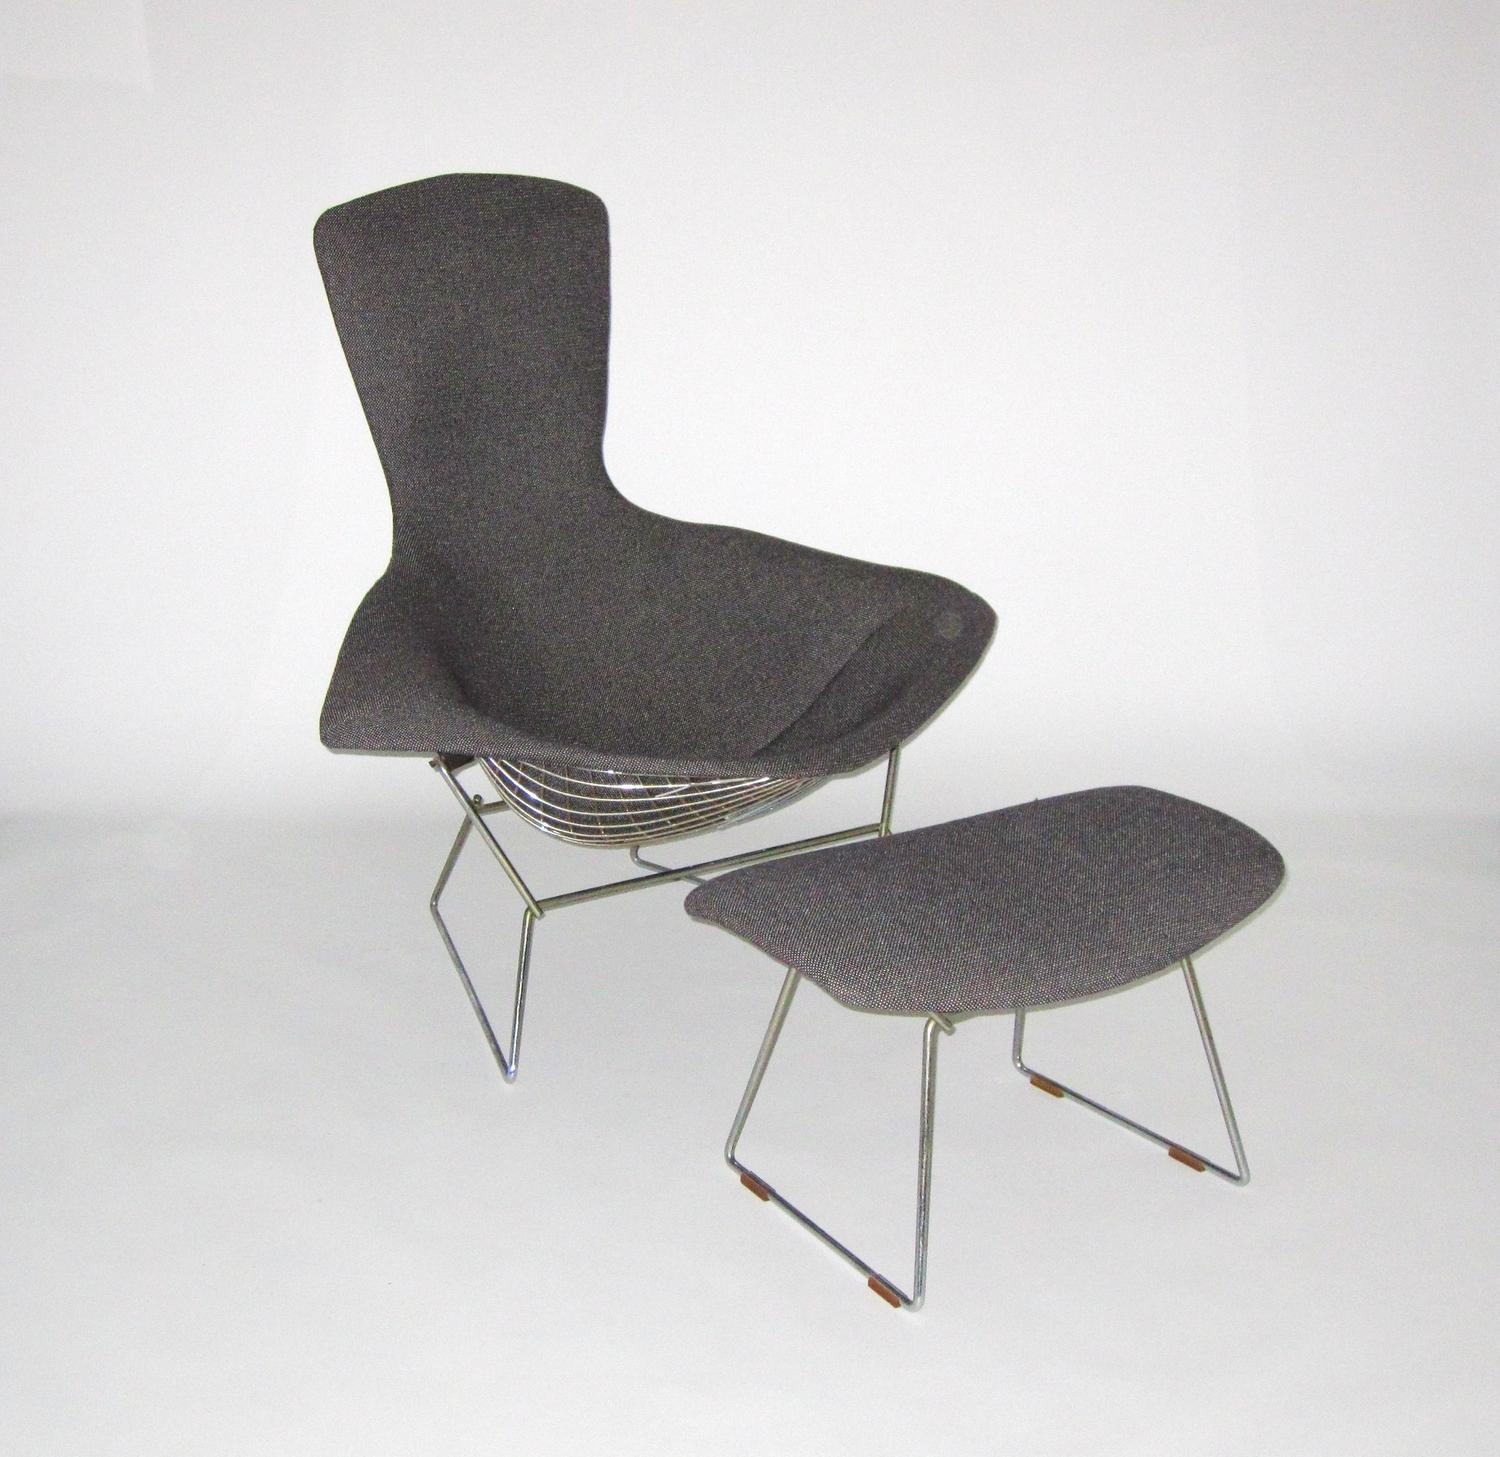 Harry Bertoia For Knoll Bird Chair With Ottoman C 1950